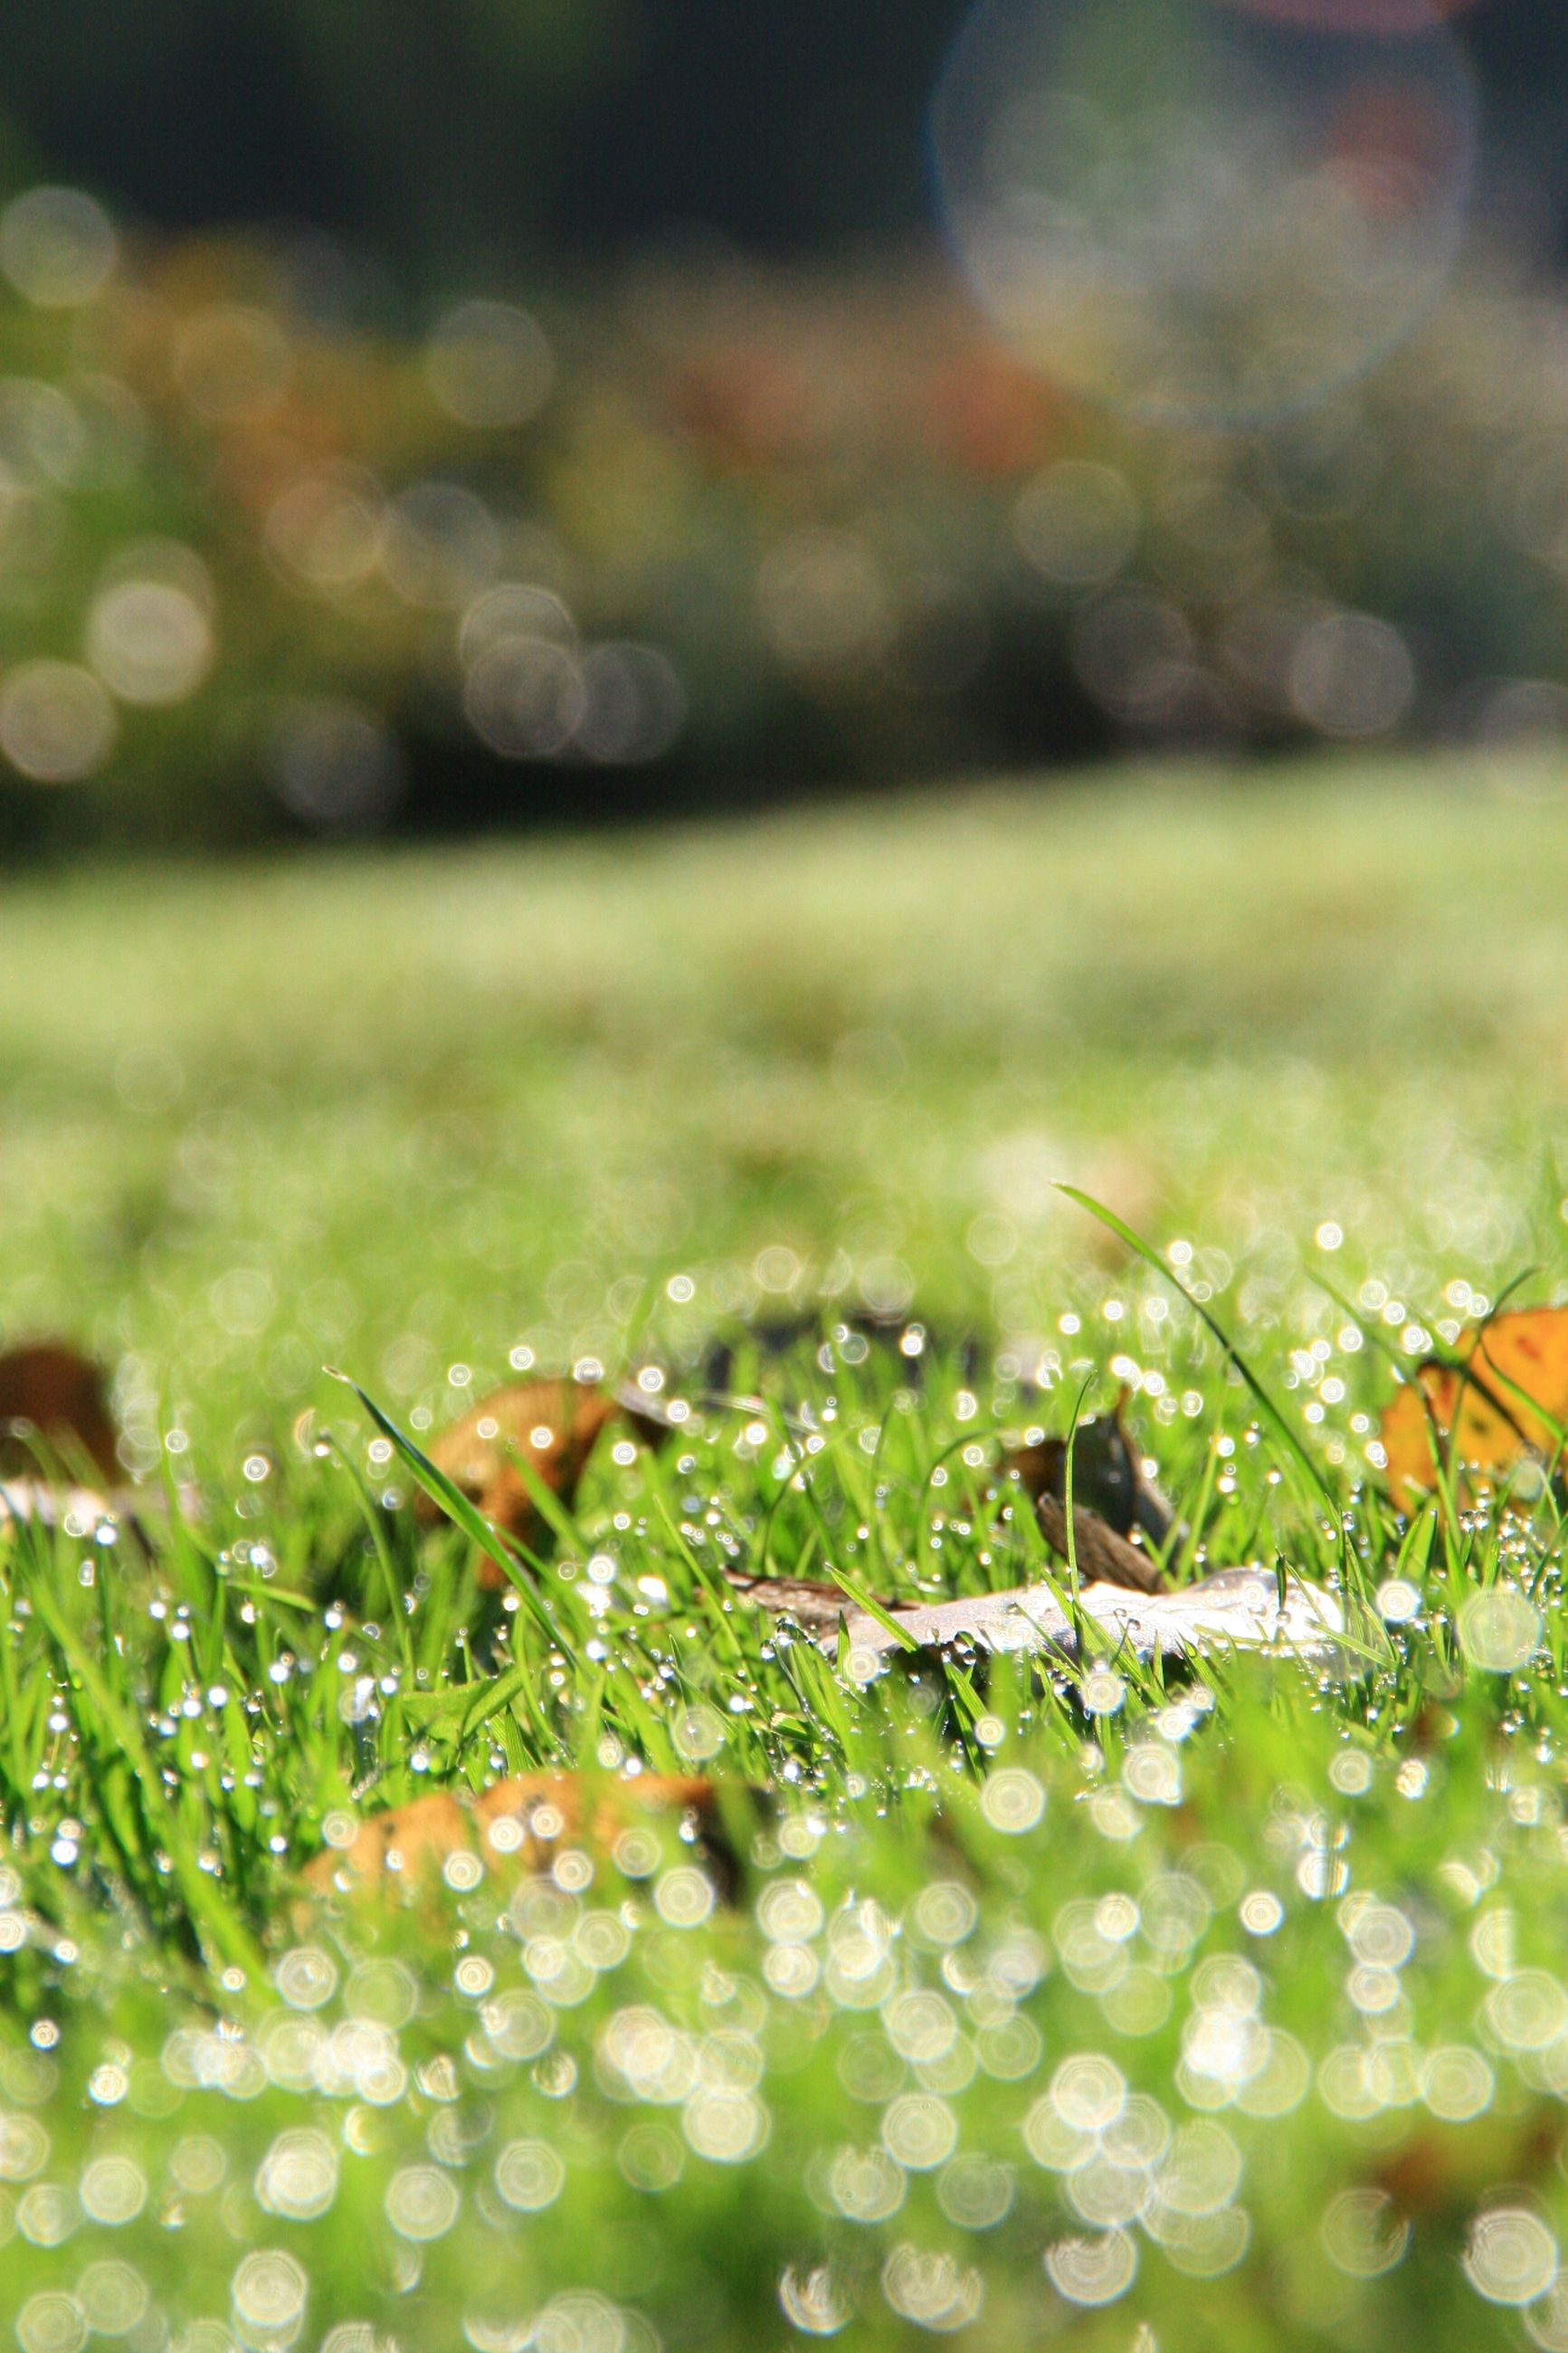 focus on foreground, close-up, green color, selective focus, drop, grass, plant, nature, leaf, growth, fragility, wet, beauty in nature, water, day, field, blade of grass, outdoors, season, spider web